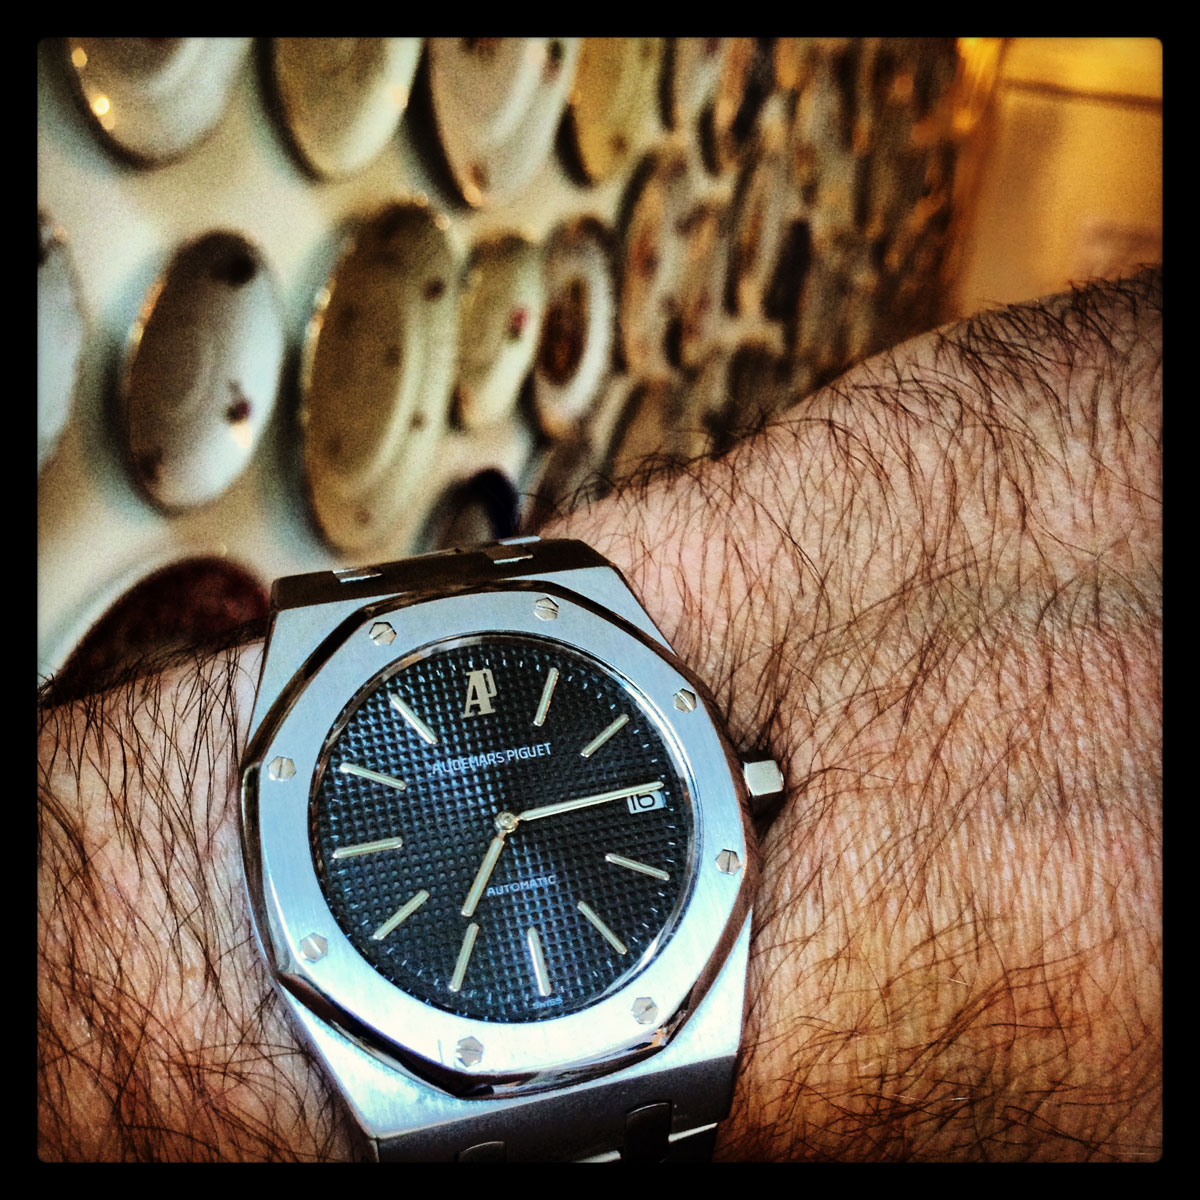 Audemars Piguet Royal Oak 5402ST